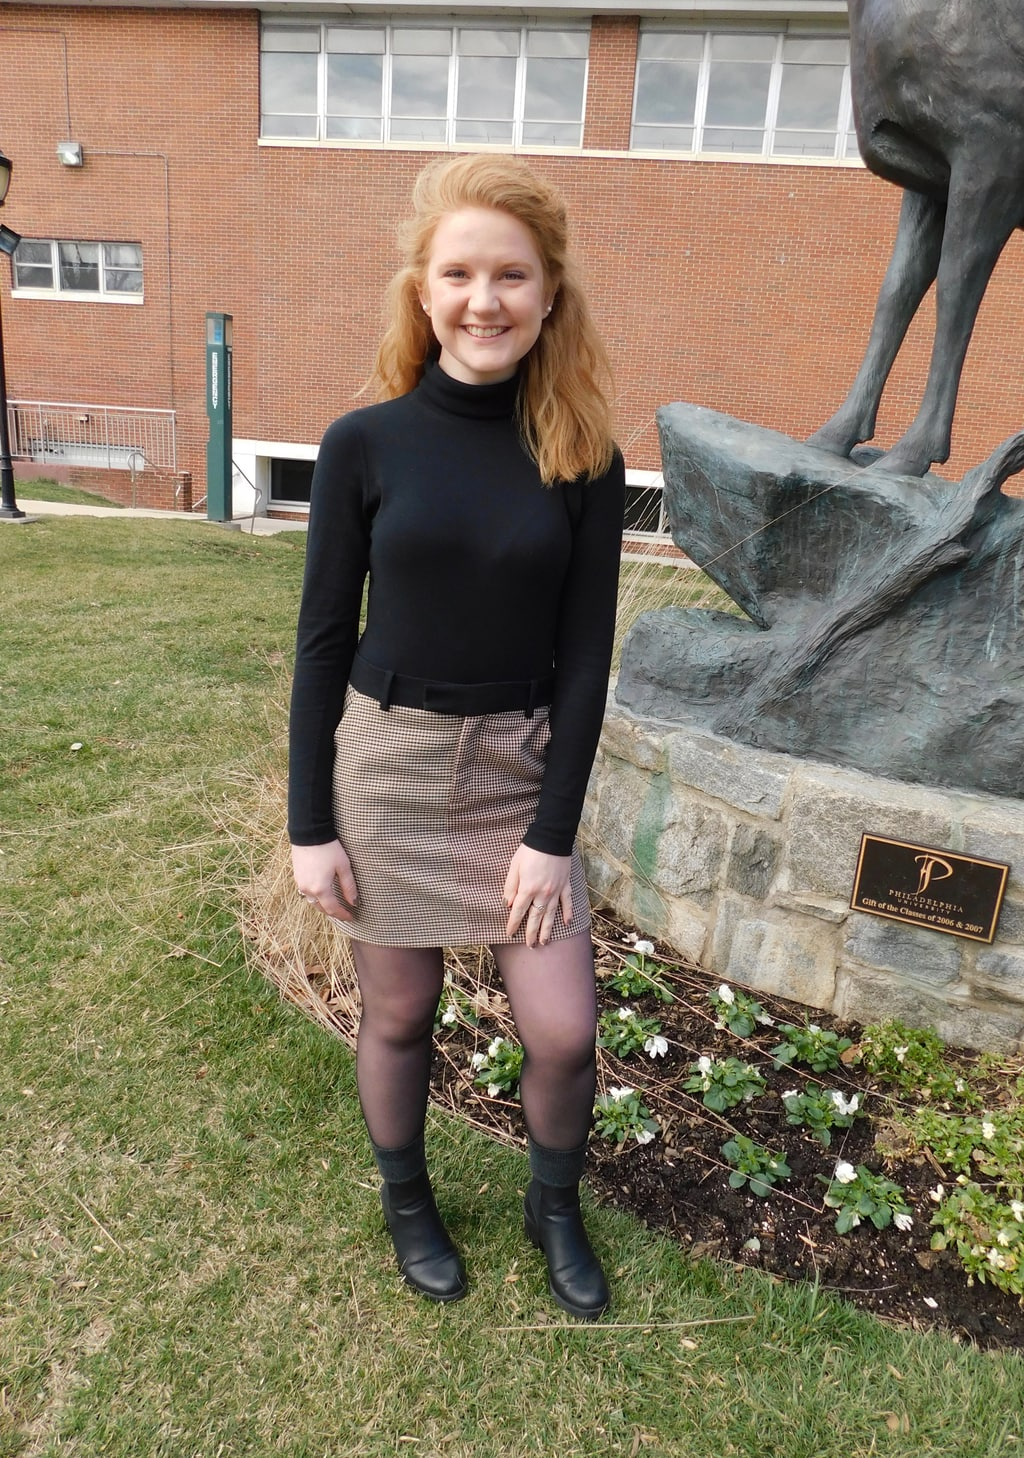 Hannah, a student a Jefferson University, wears a black long-sleeve turtleneck sweater tucked into a maroon houndstooth miniskirt with a black waistband, sheer tights, chunky black boots, and grey boot socks.